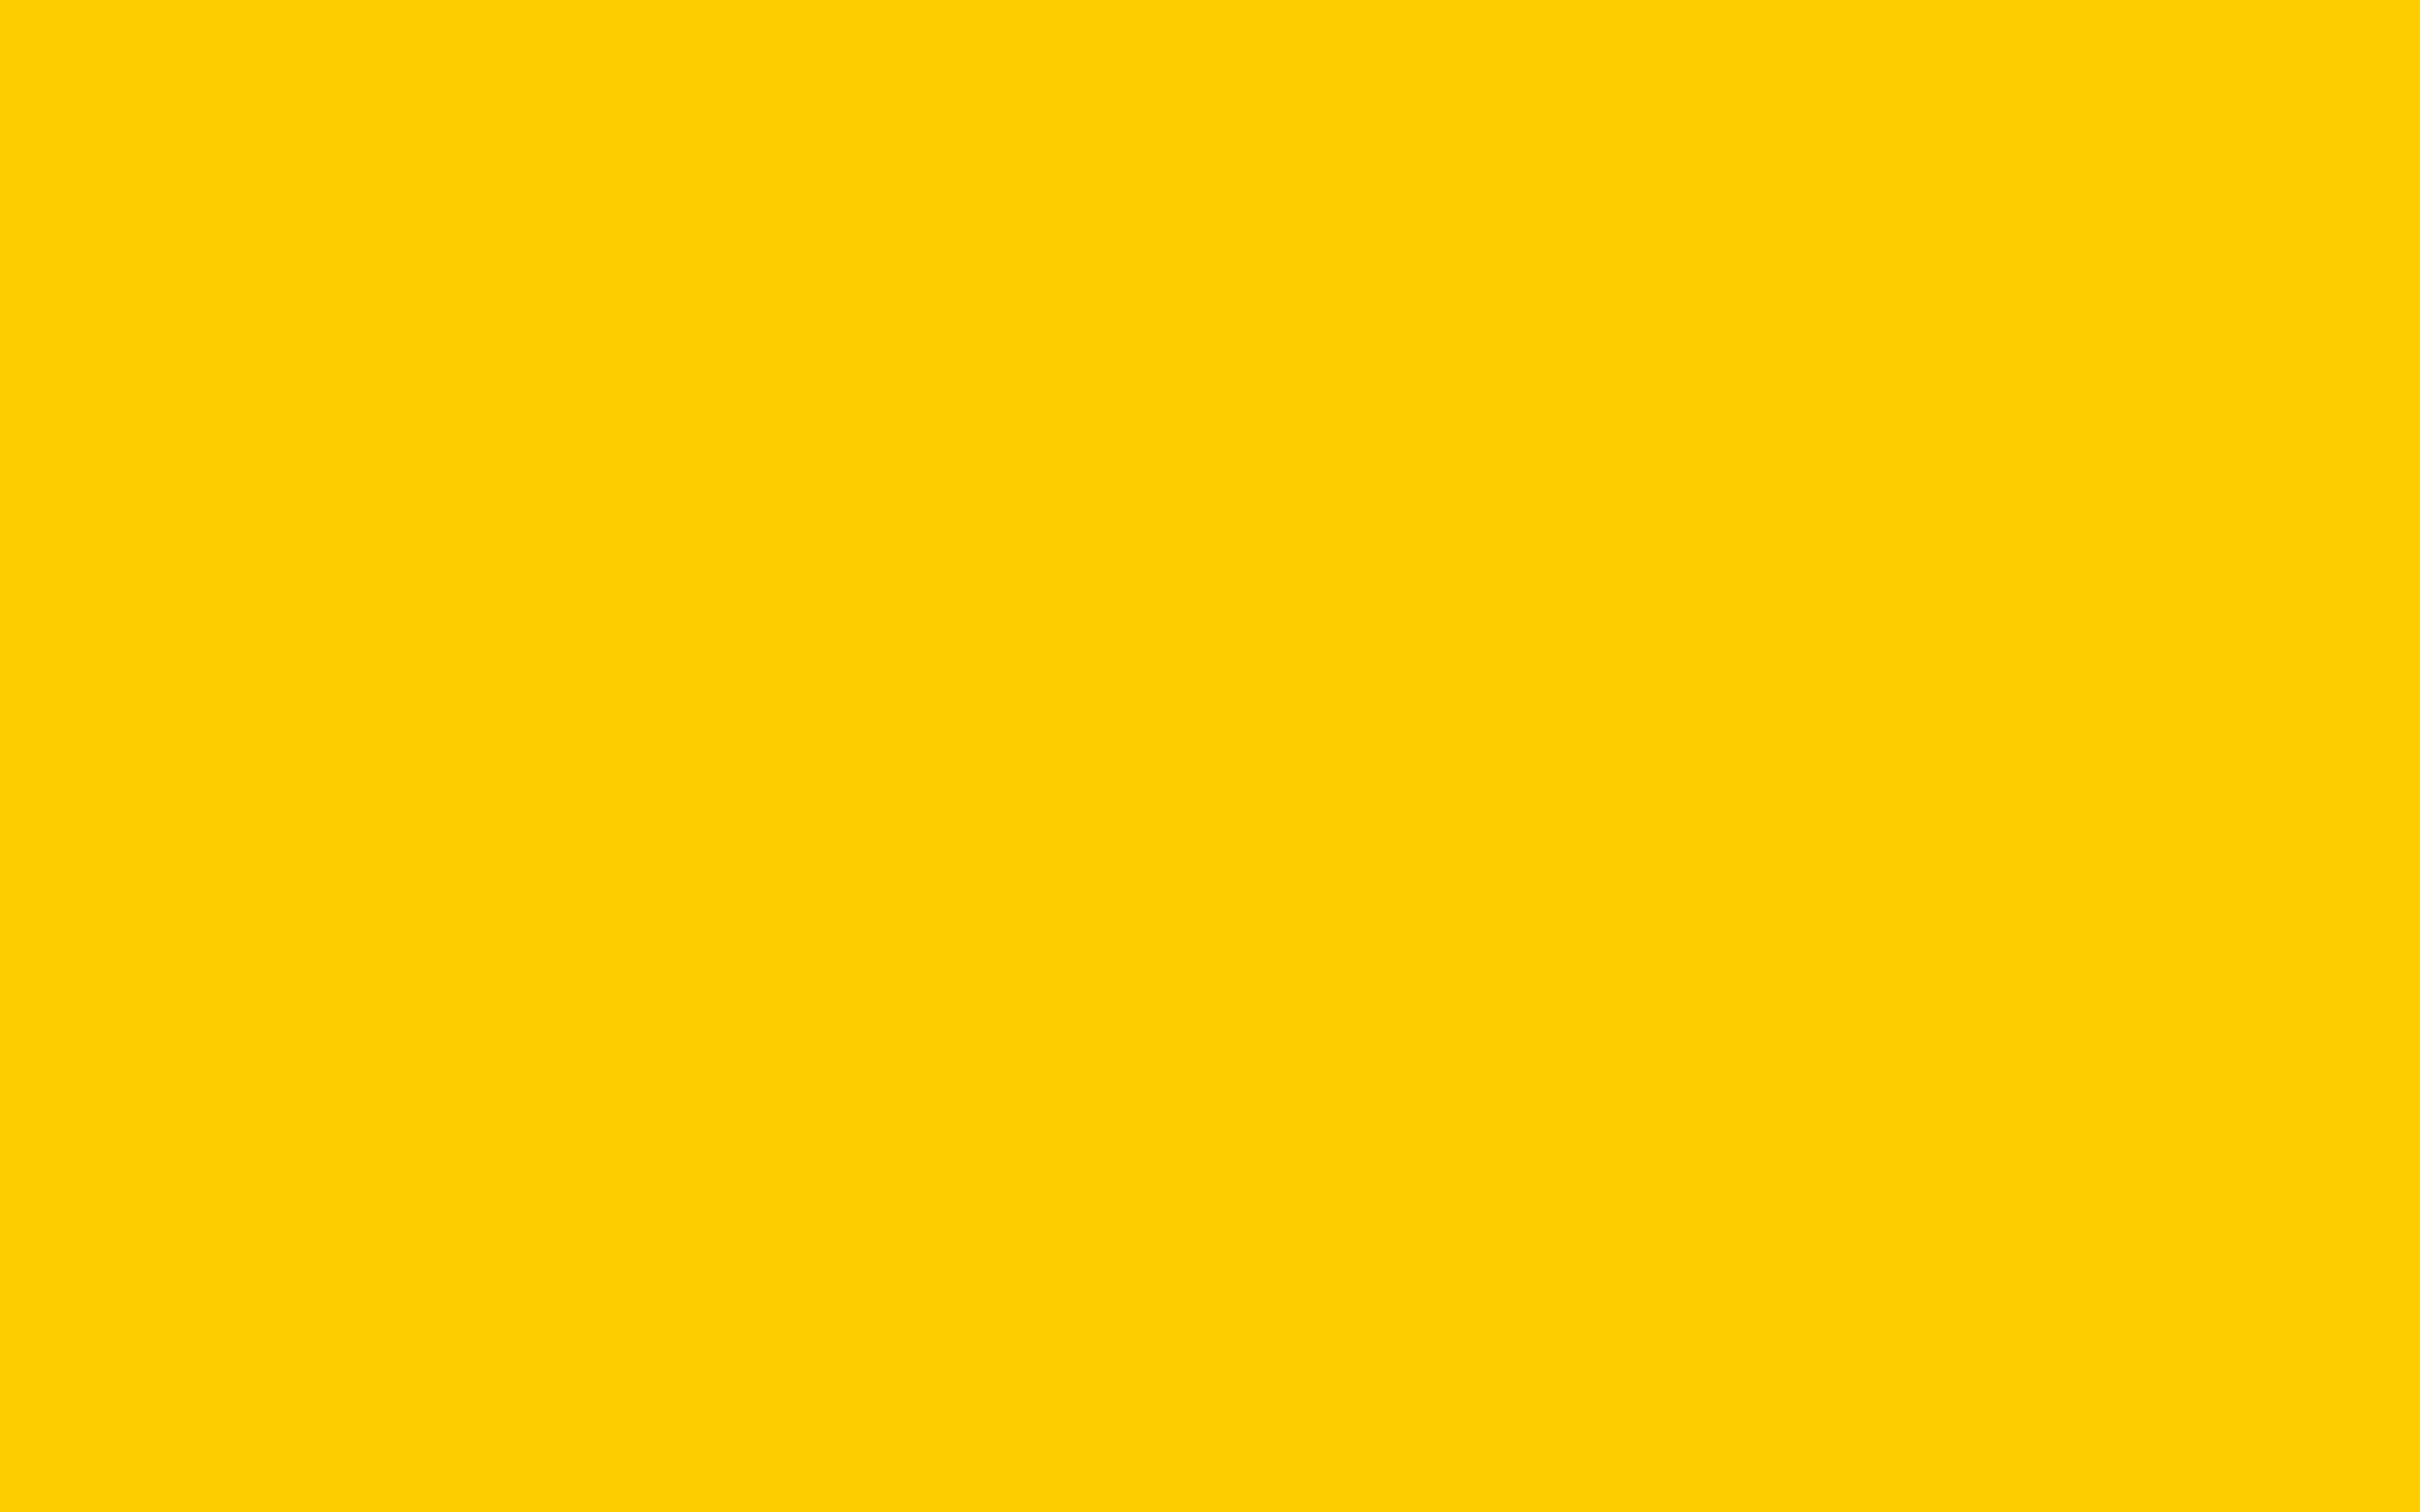 2560x1600 Tangerine Yellow Solid Color Background